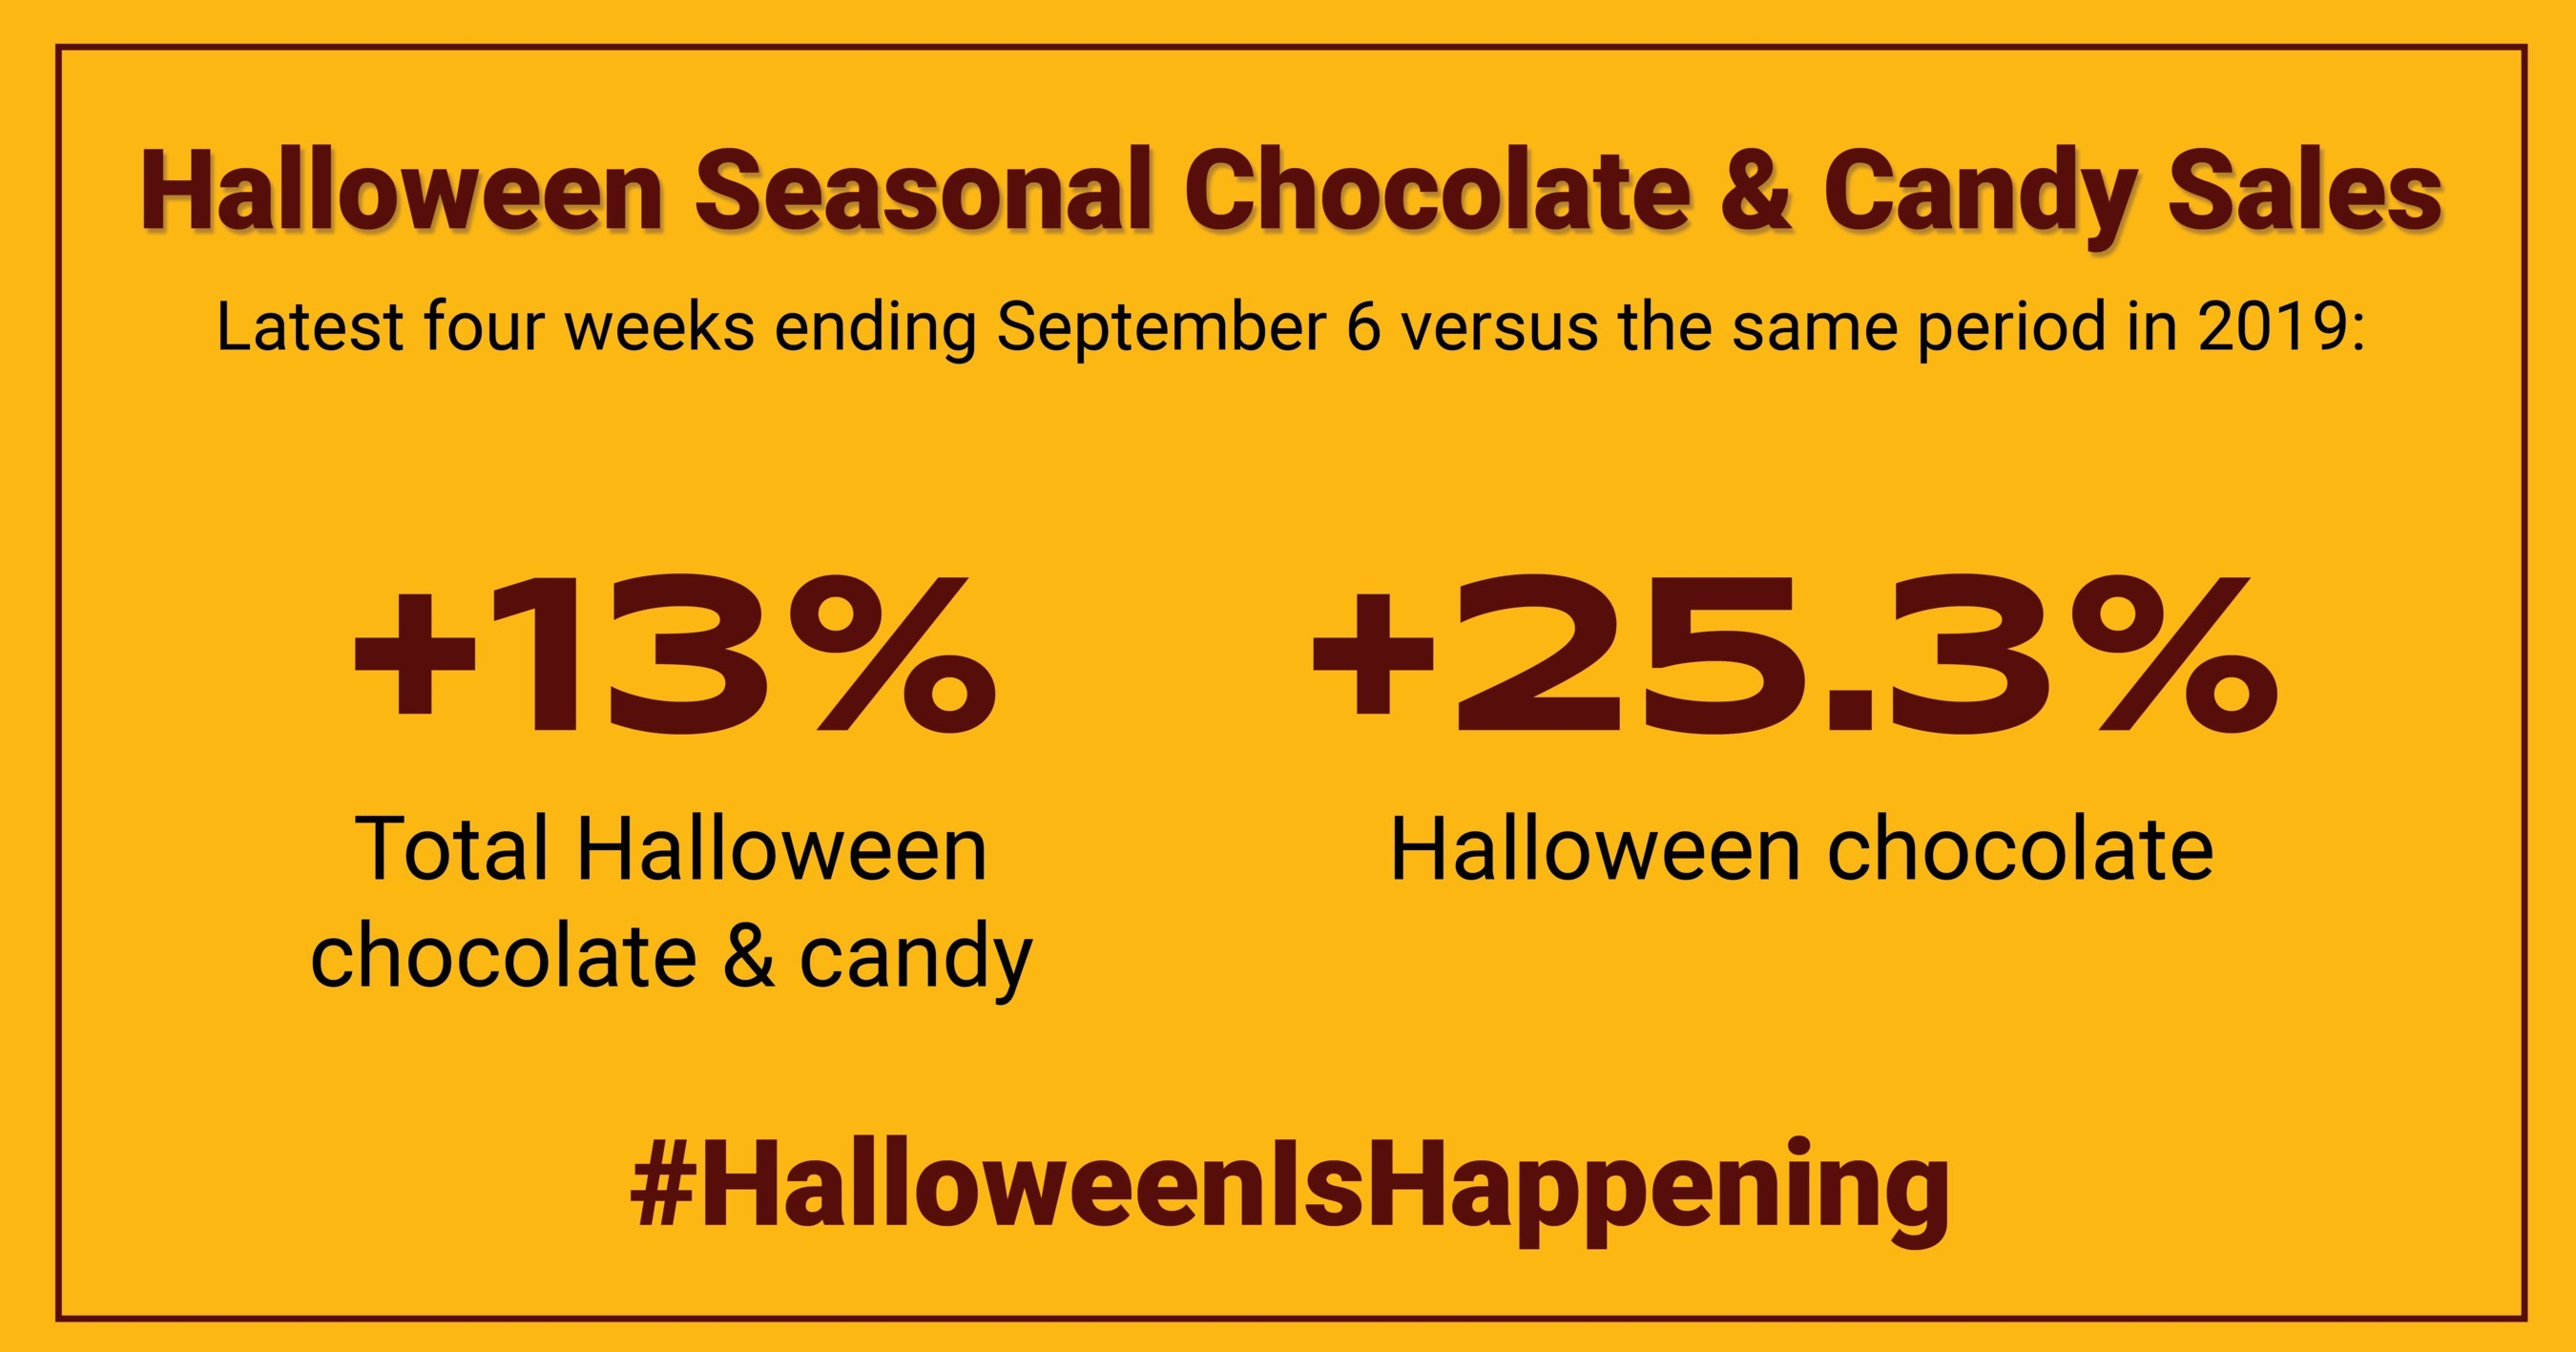 Halloween 2020 Total Revenue New Sales Data Shows Halloween Candy Sales Are Up in 2020